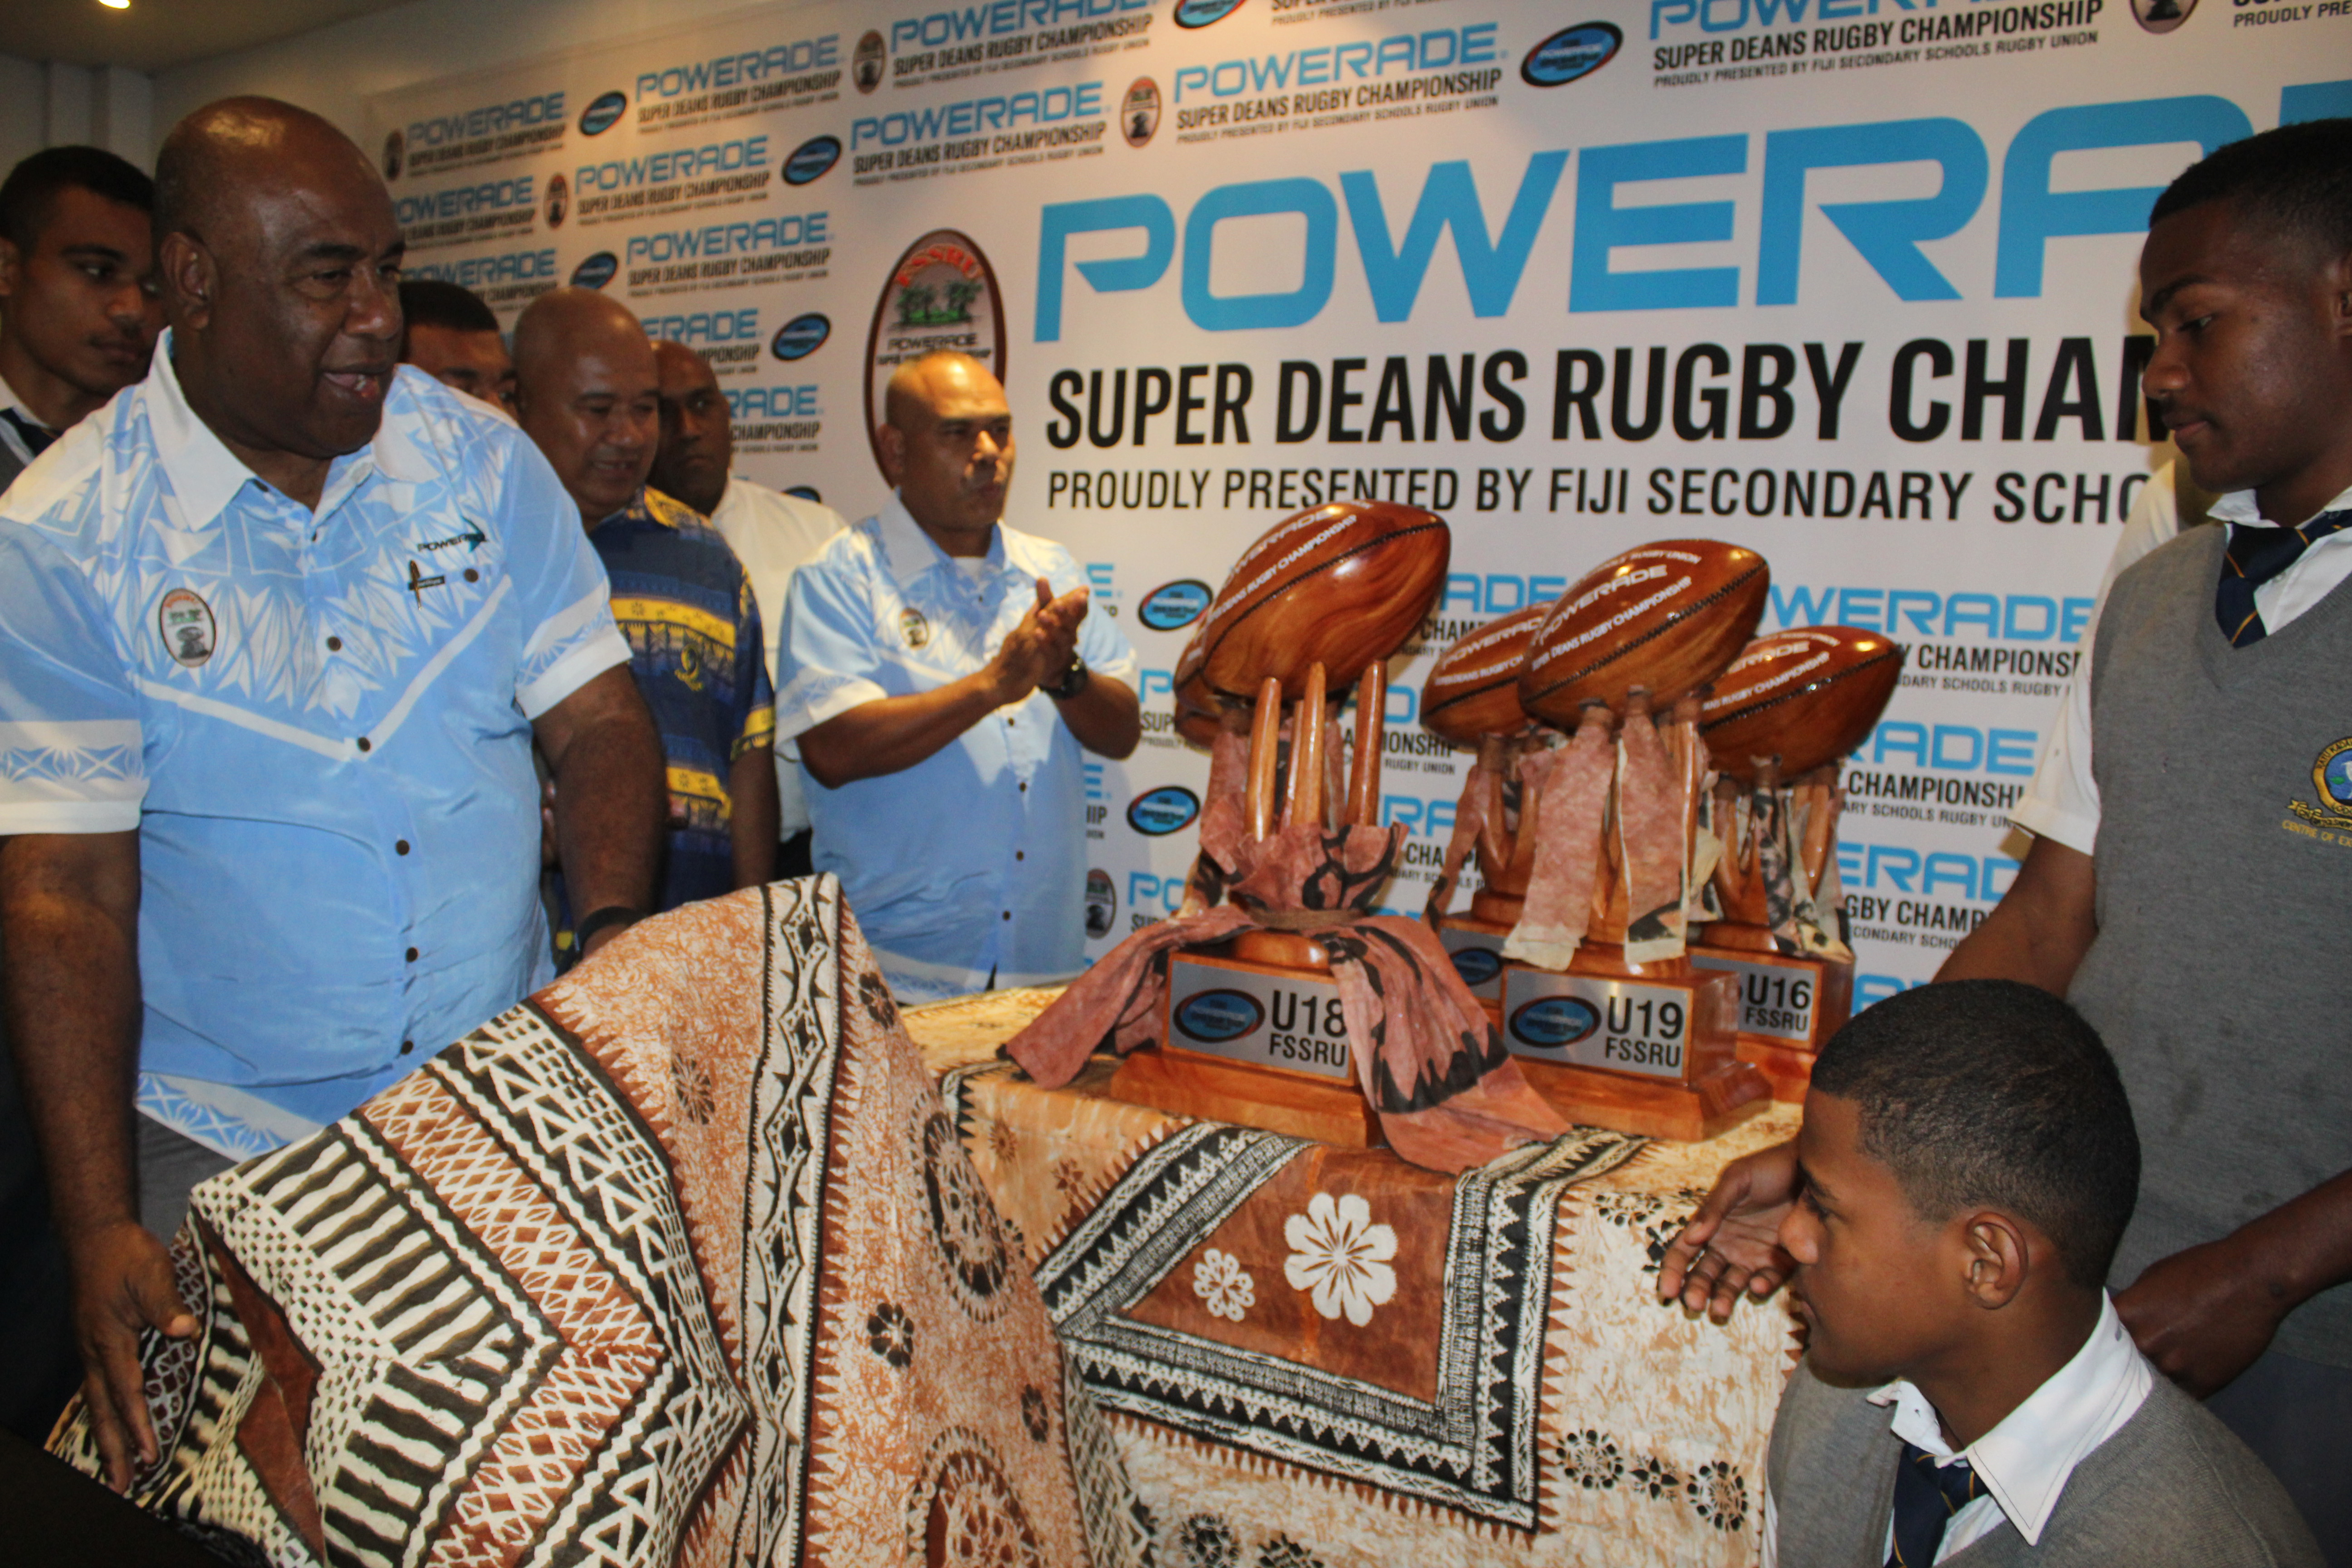 Fiji Secondary Schools Rugby Union president Setareki Merekula unveils the new trophies for the Powerade Super Deans Rugby competition at the Holiday Inn on July 26,2018. Photo:  Simione Haranavanua